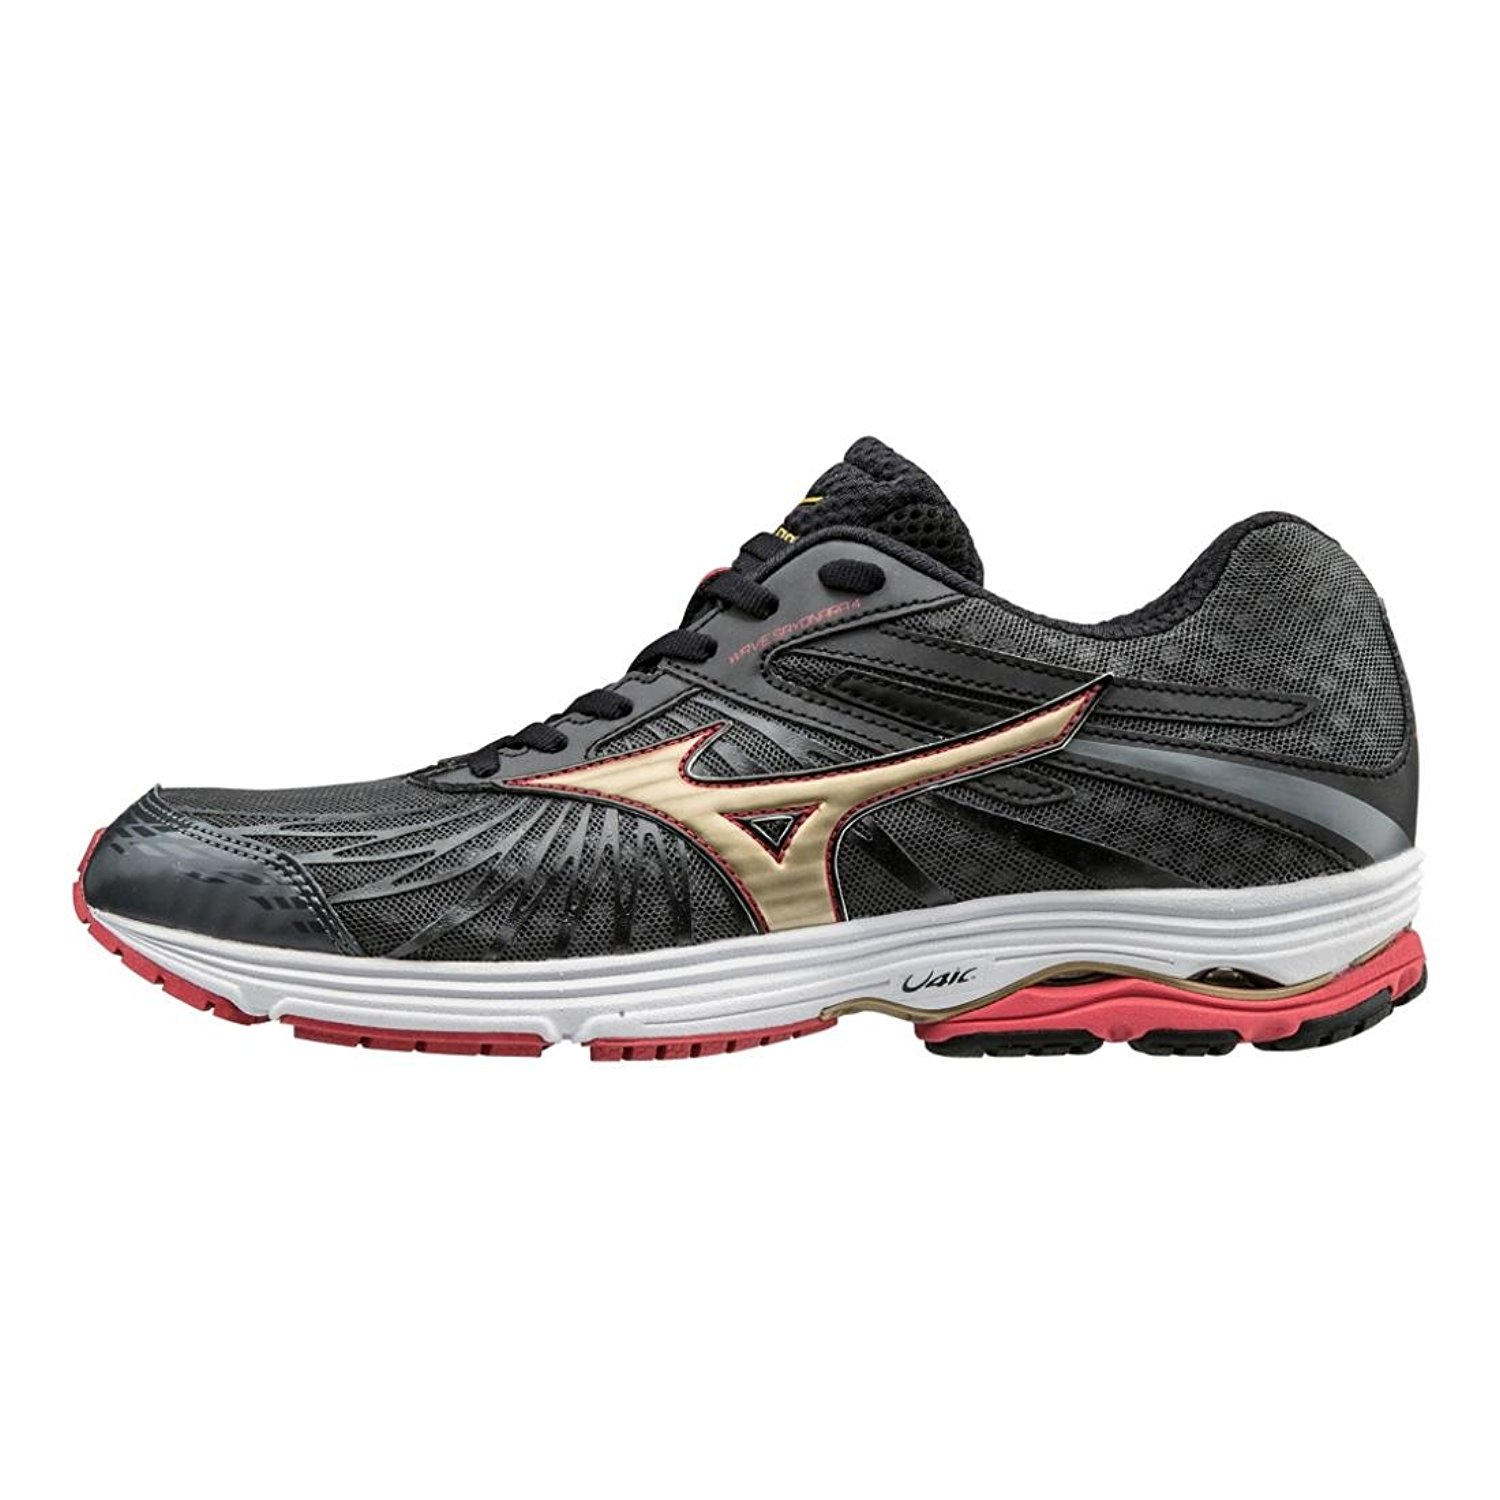 mizuno men's running shoes size 9 youth gold trend today hoy